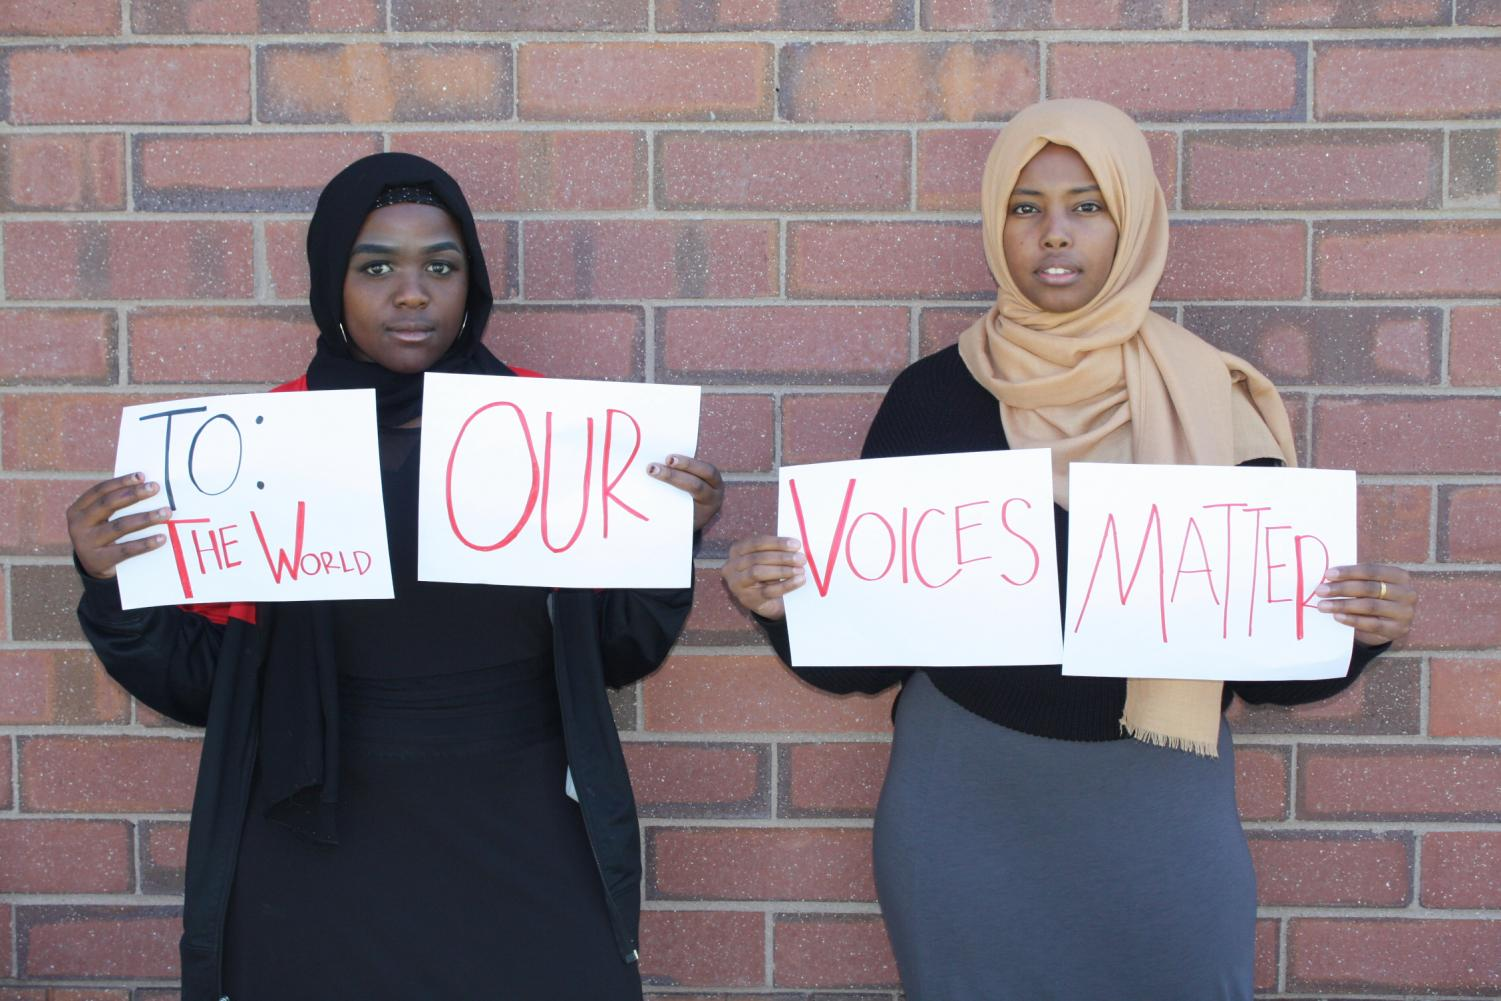 Muslim students take a stand against hate and bigotry. They refuse to let their voices be silenced in a climate of fear and violence.